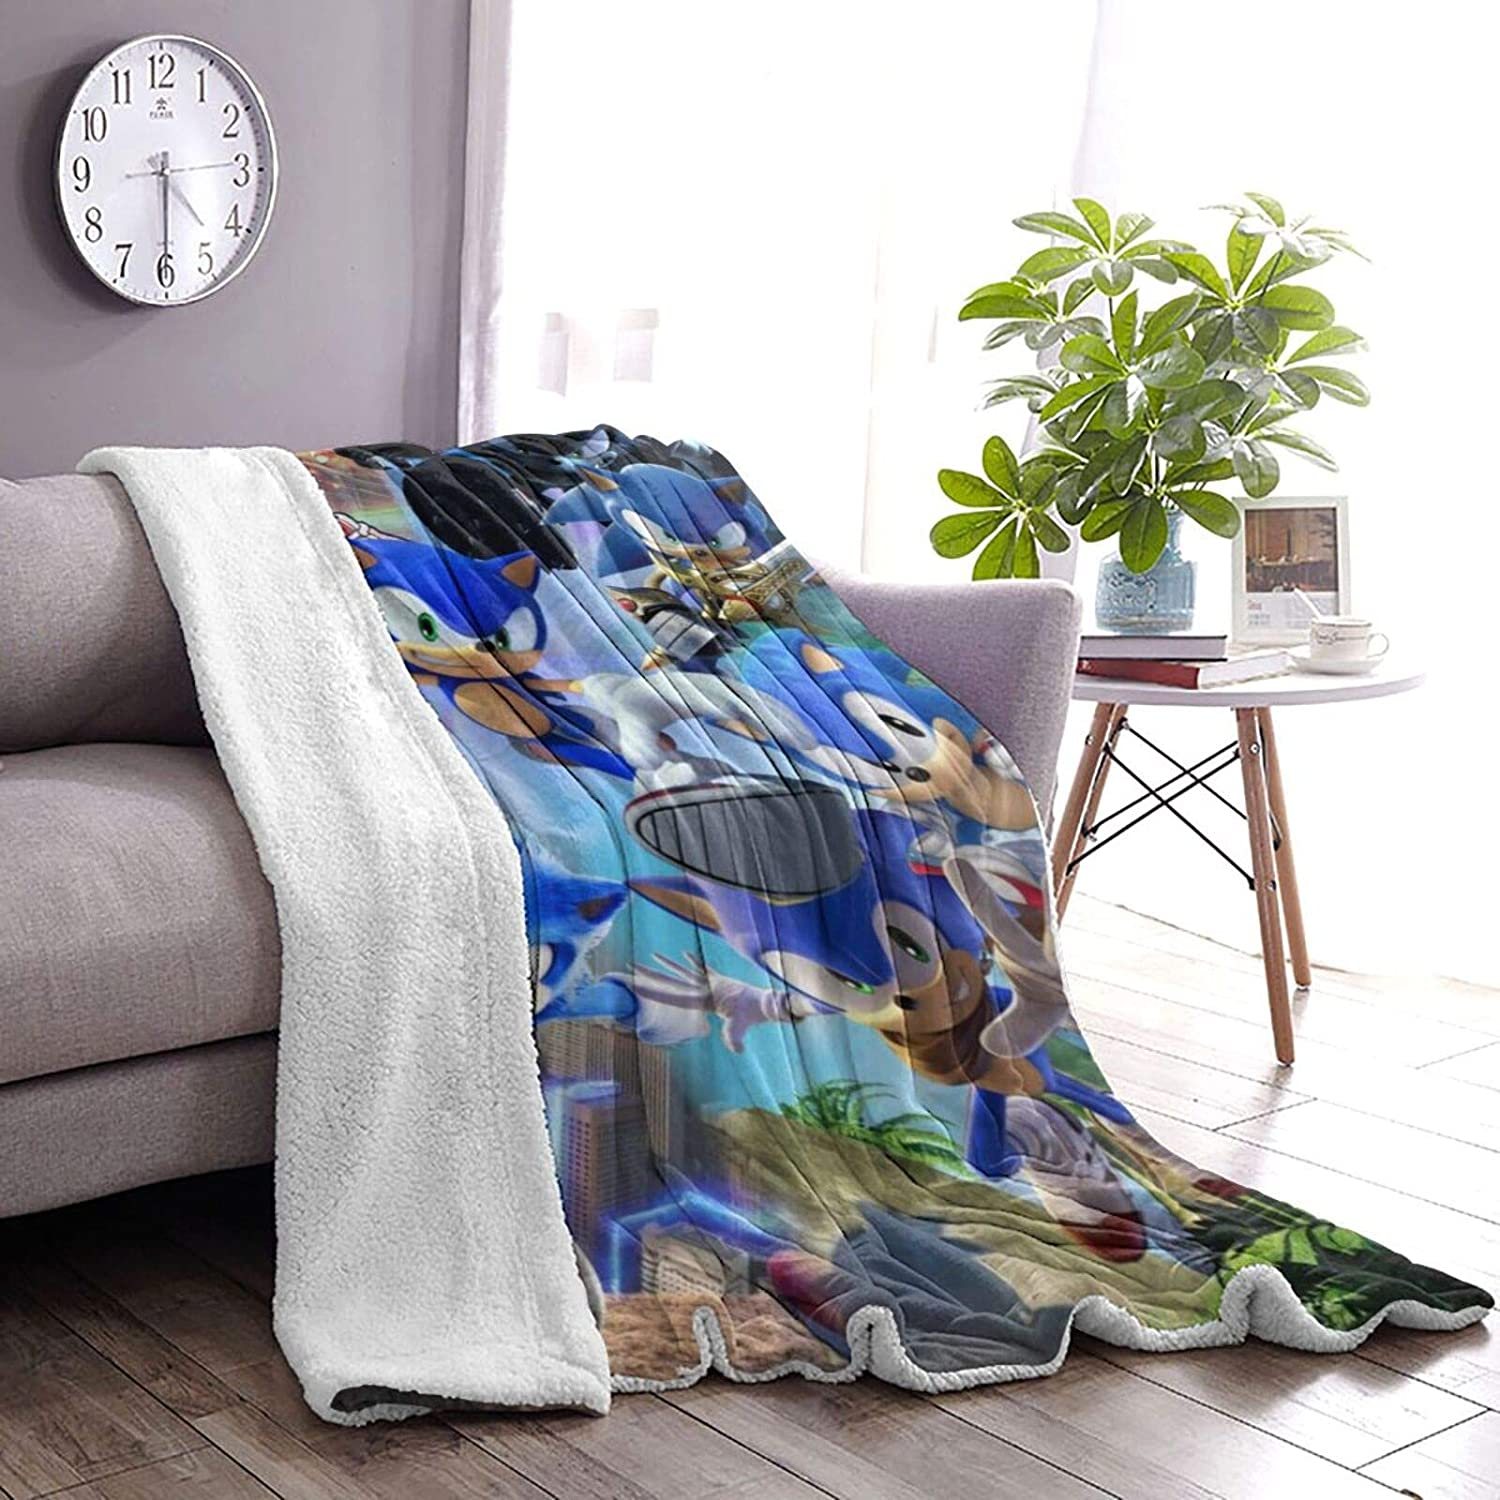 Hedgehog Warm Soft Blanket in Winter Lambswool Blanket Thickened Double Layer Double-Sided Throw Blanket for Kids Adults Gift Sofa Chair Bed Office 50 x40 Sonic-The